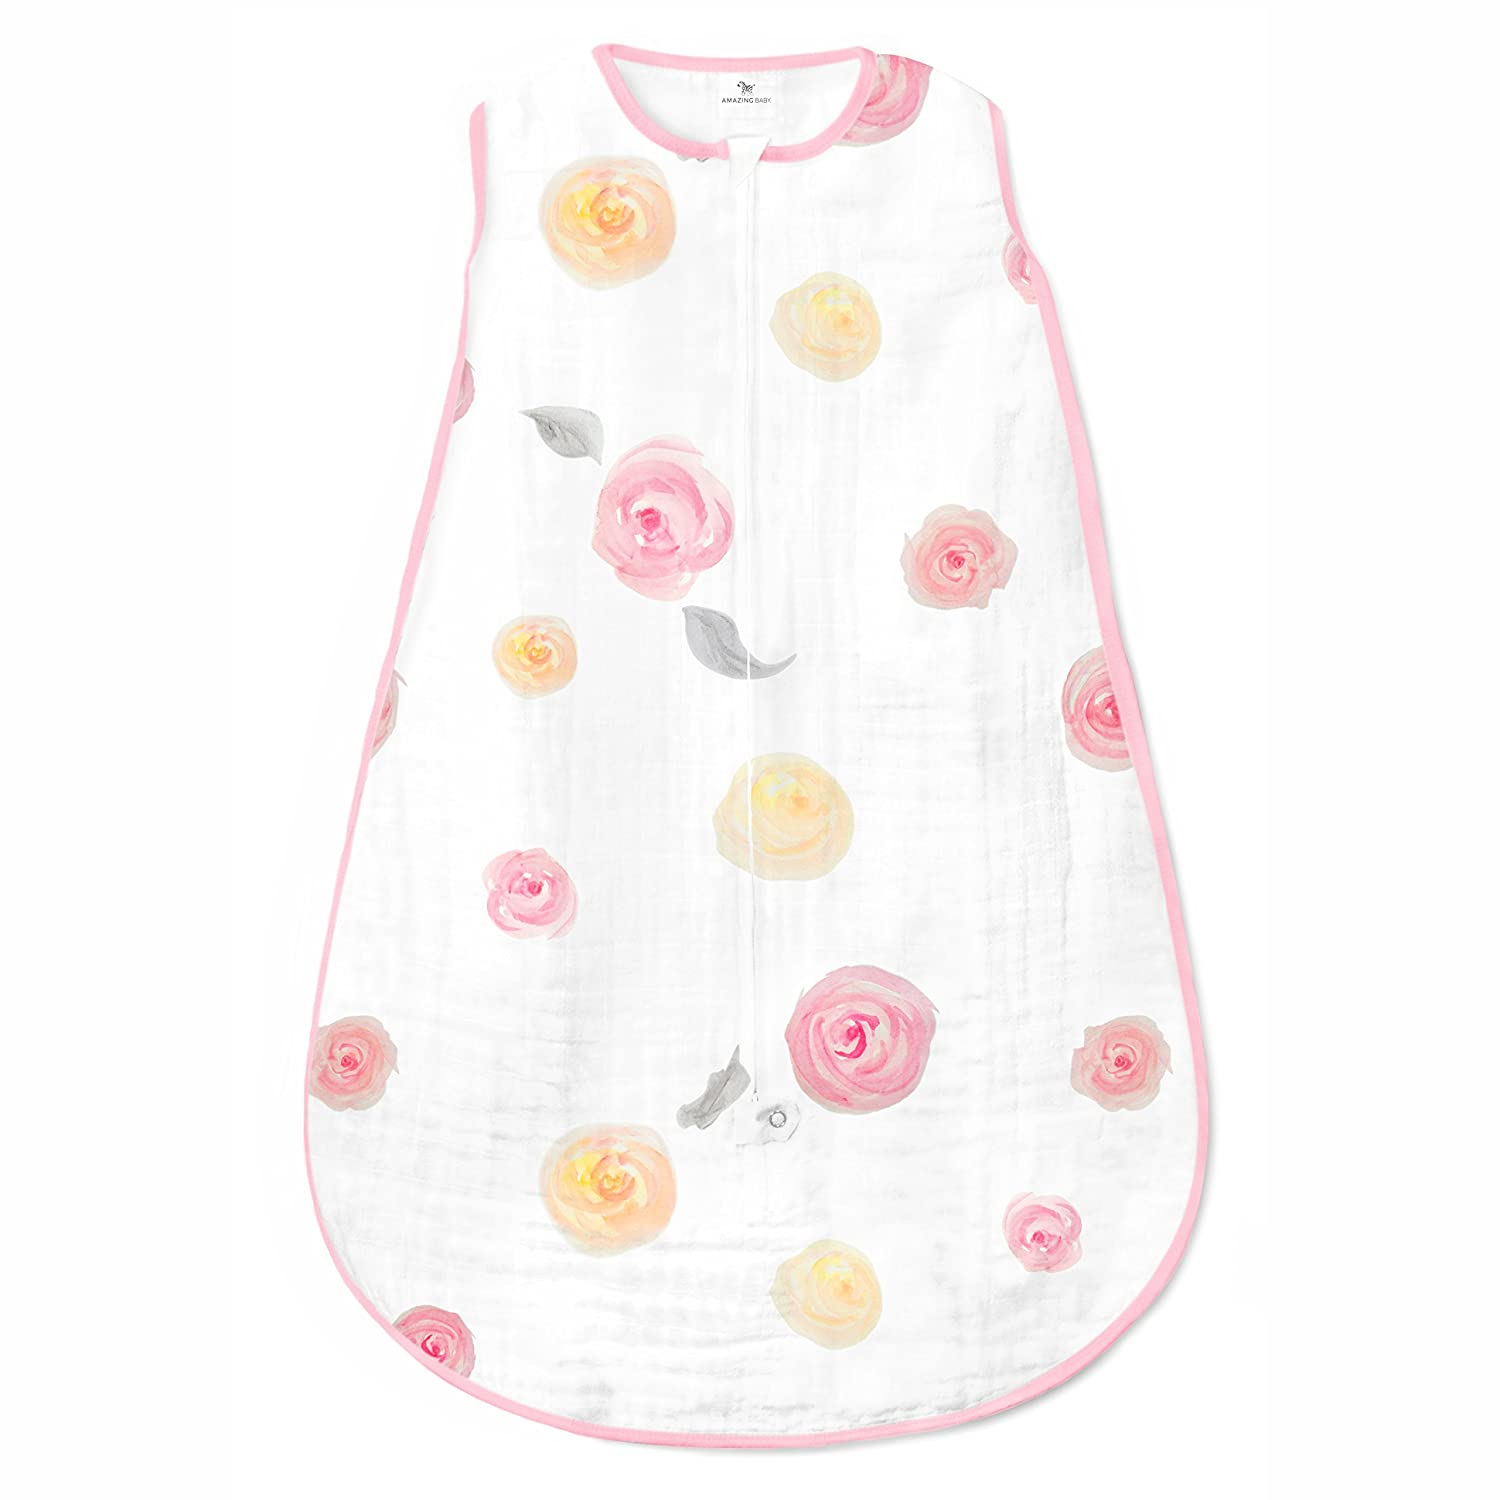 Amazing Baby Muslin Sleeping Sack with 2-Way Zipper, Watercolor Roses, Pink, Small